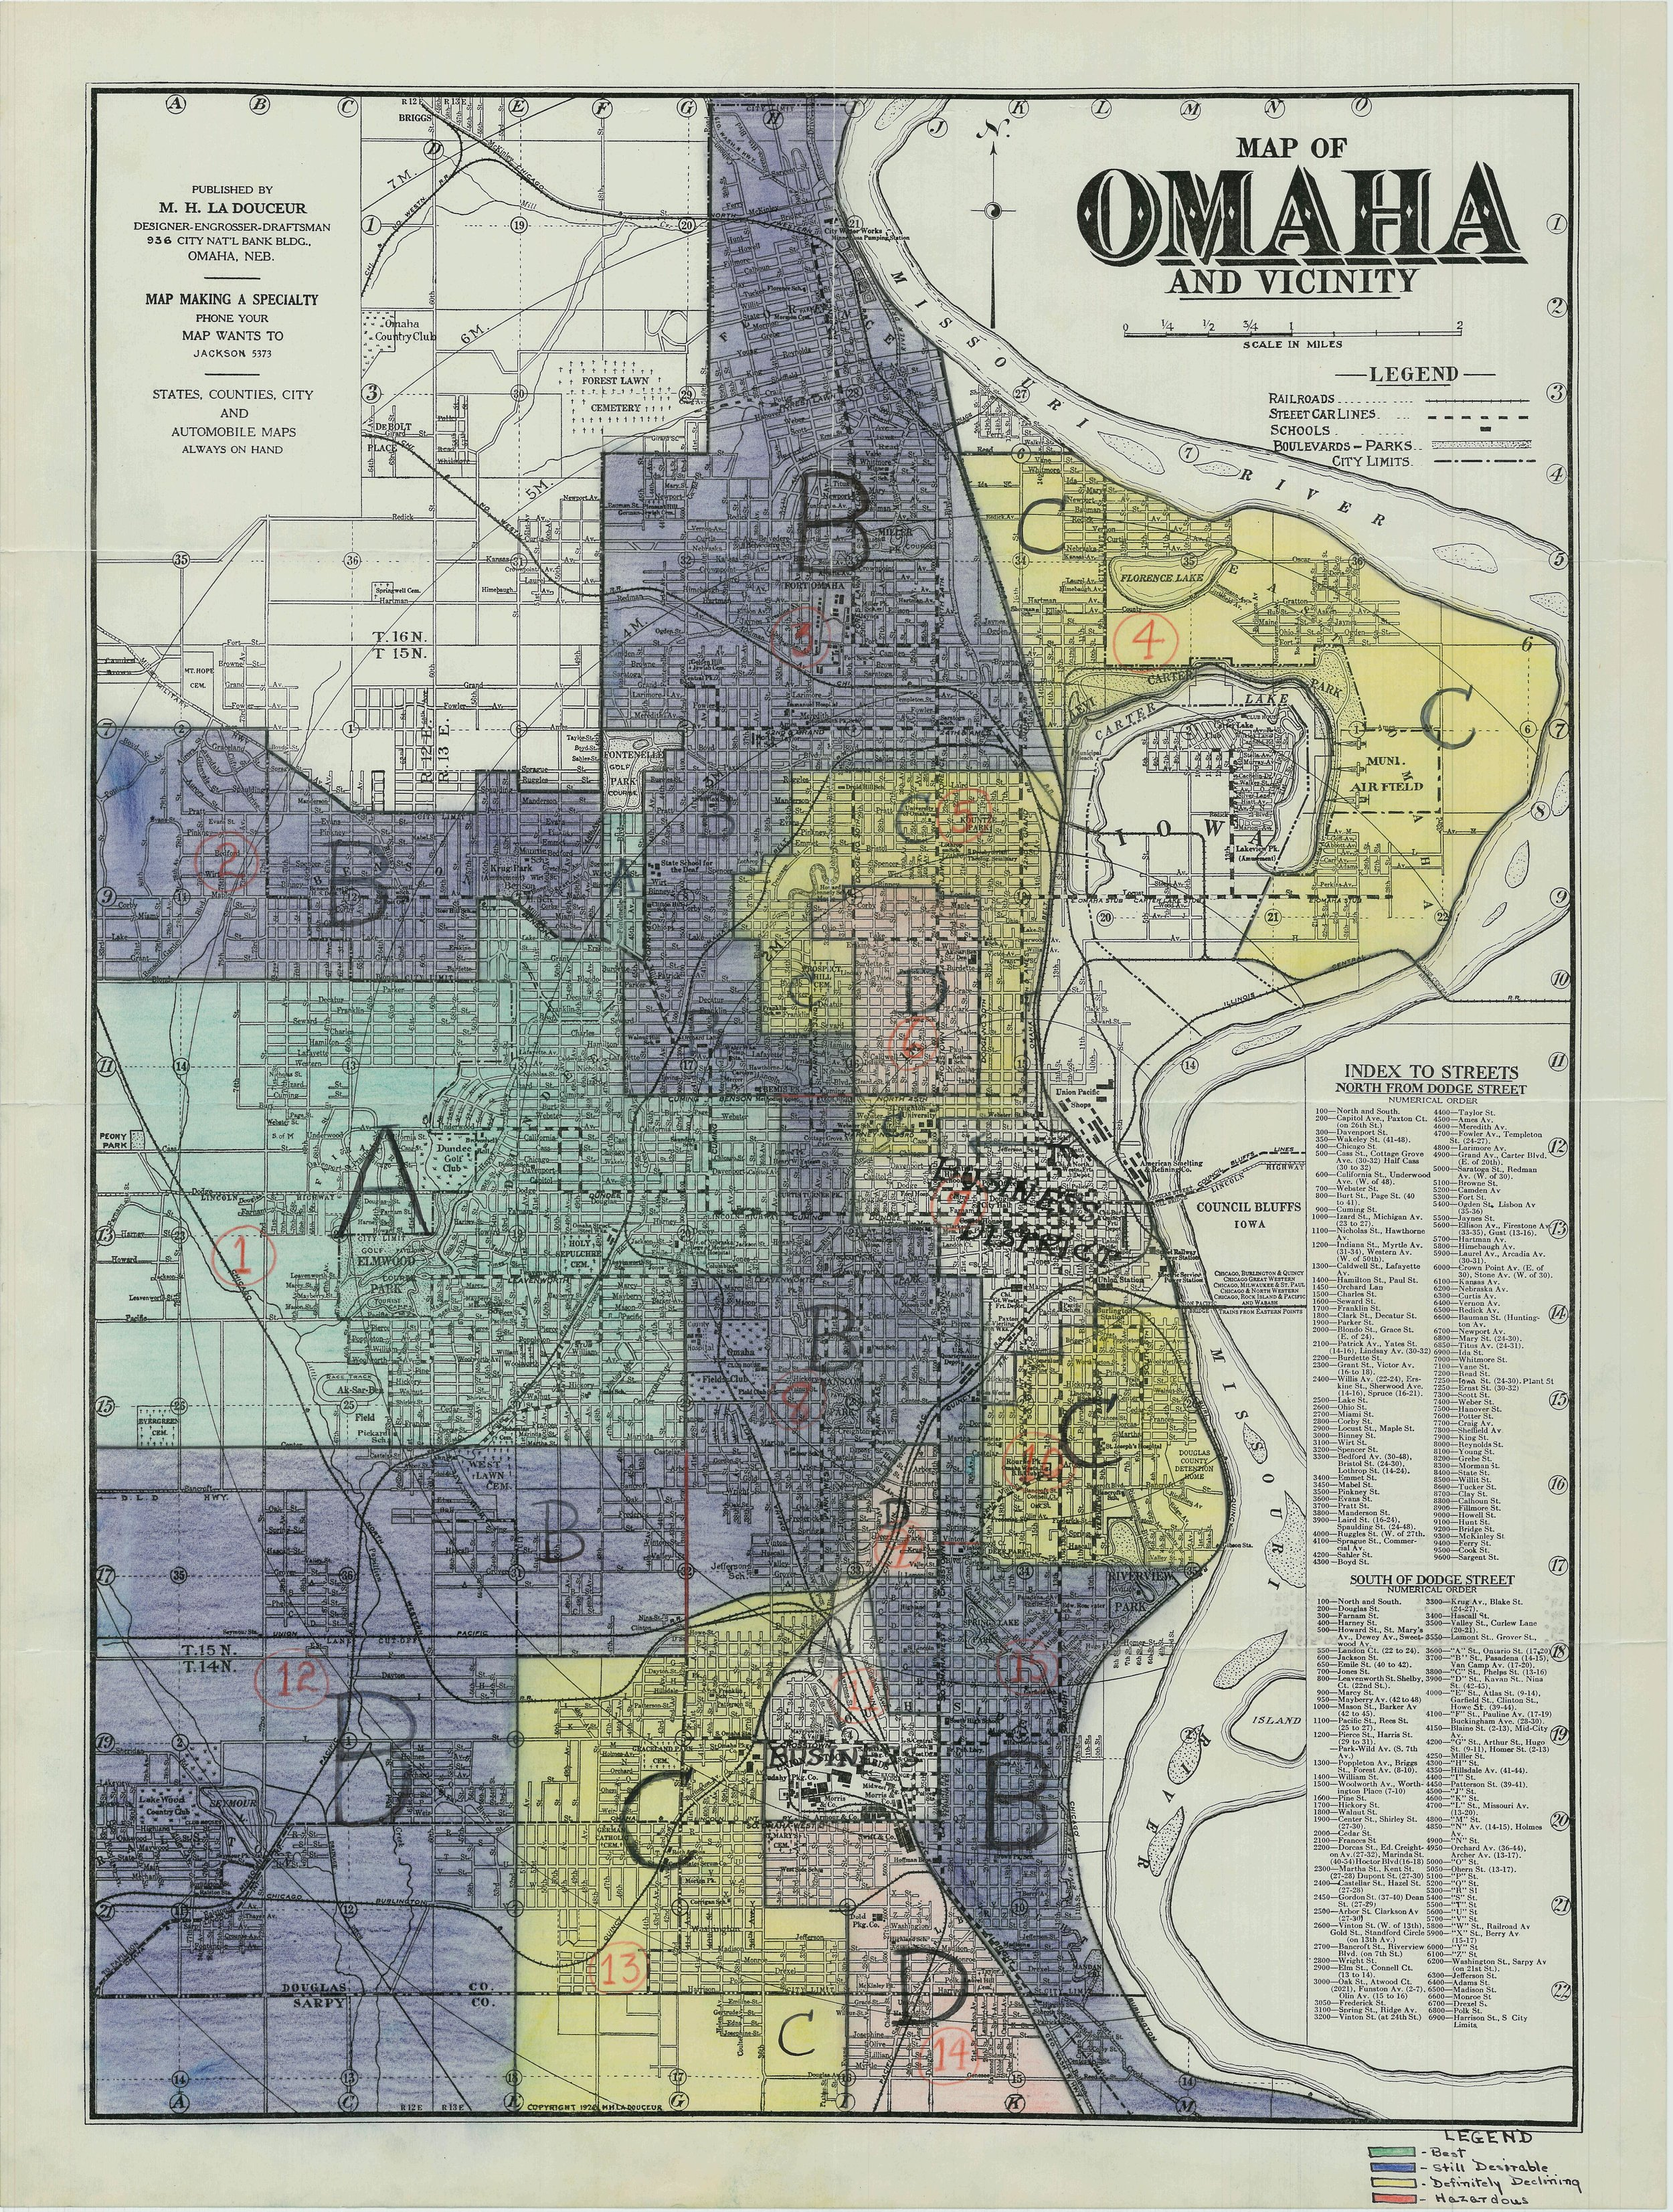 1937 Home Owner's Loan Corporation (HOLC) Map of Omaha